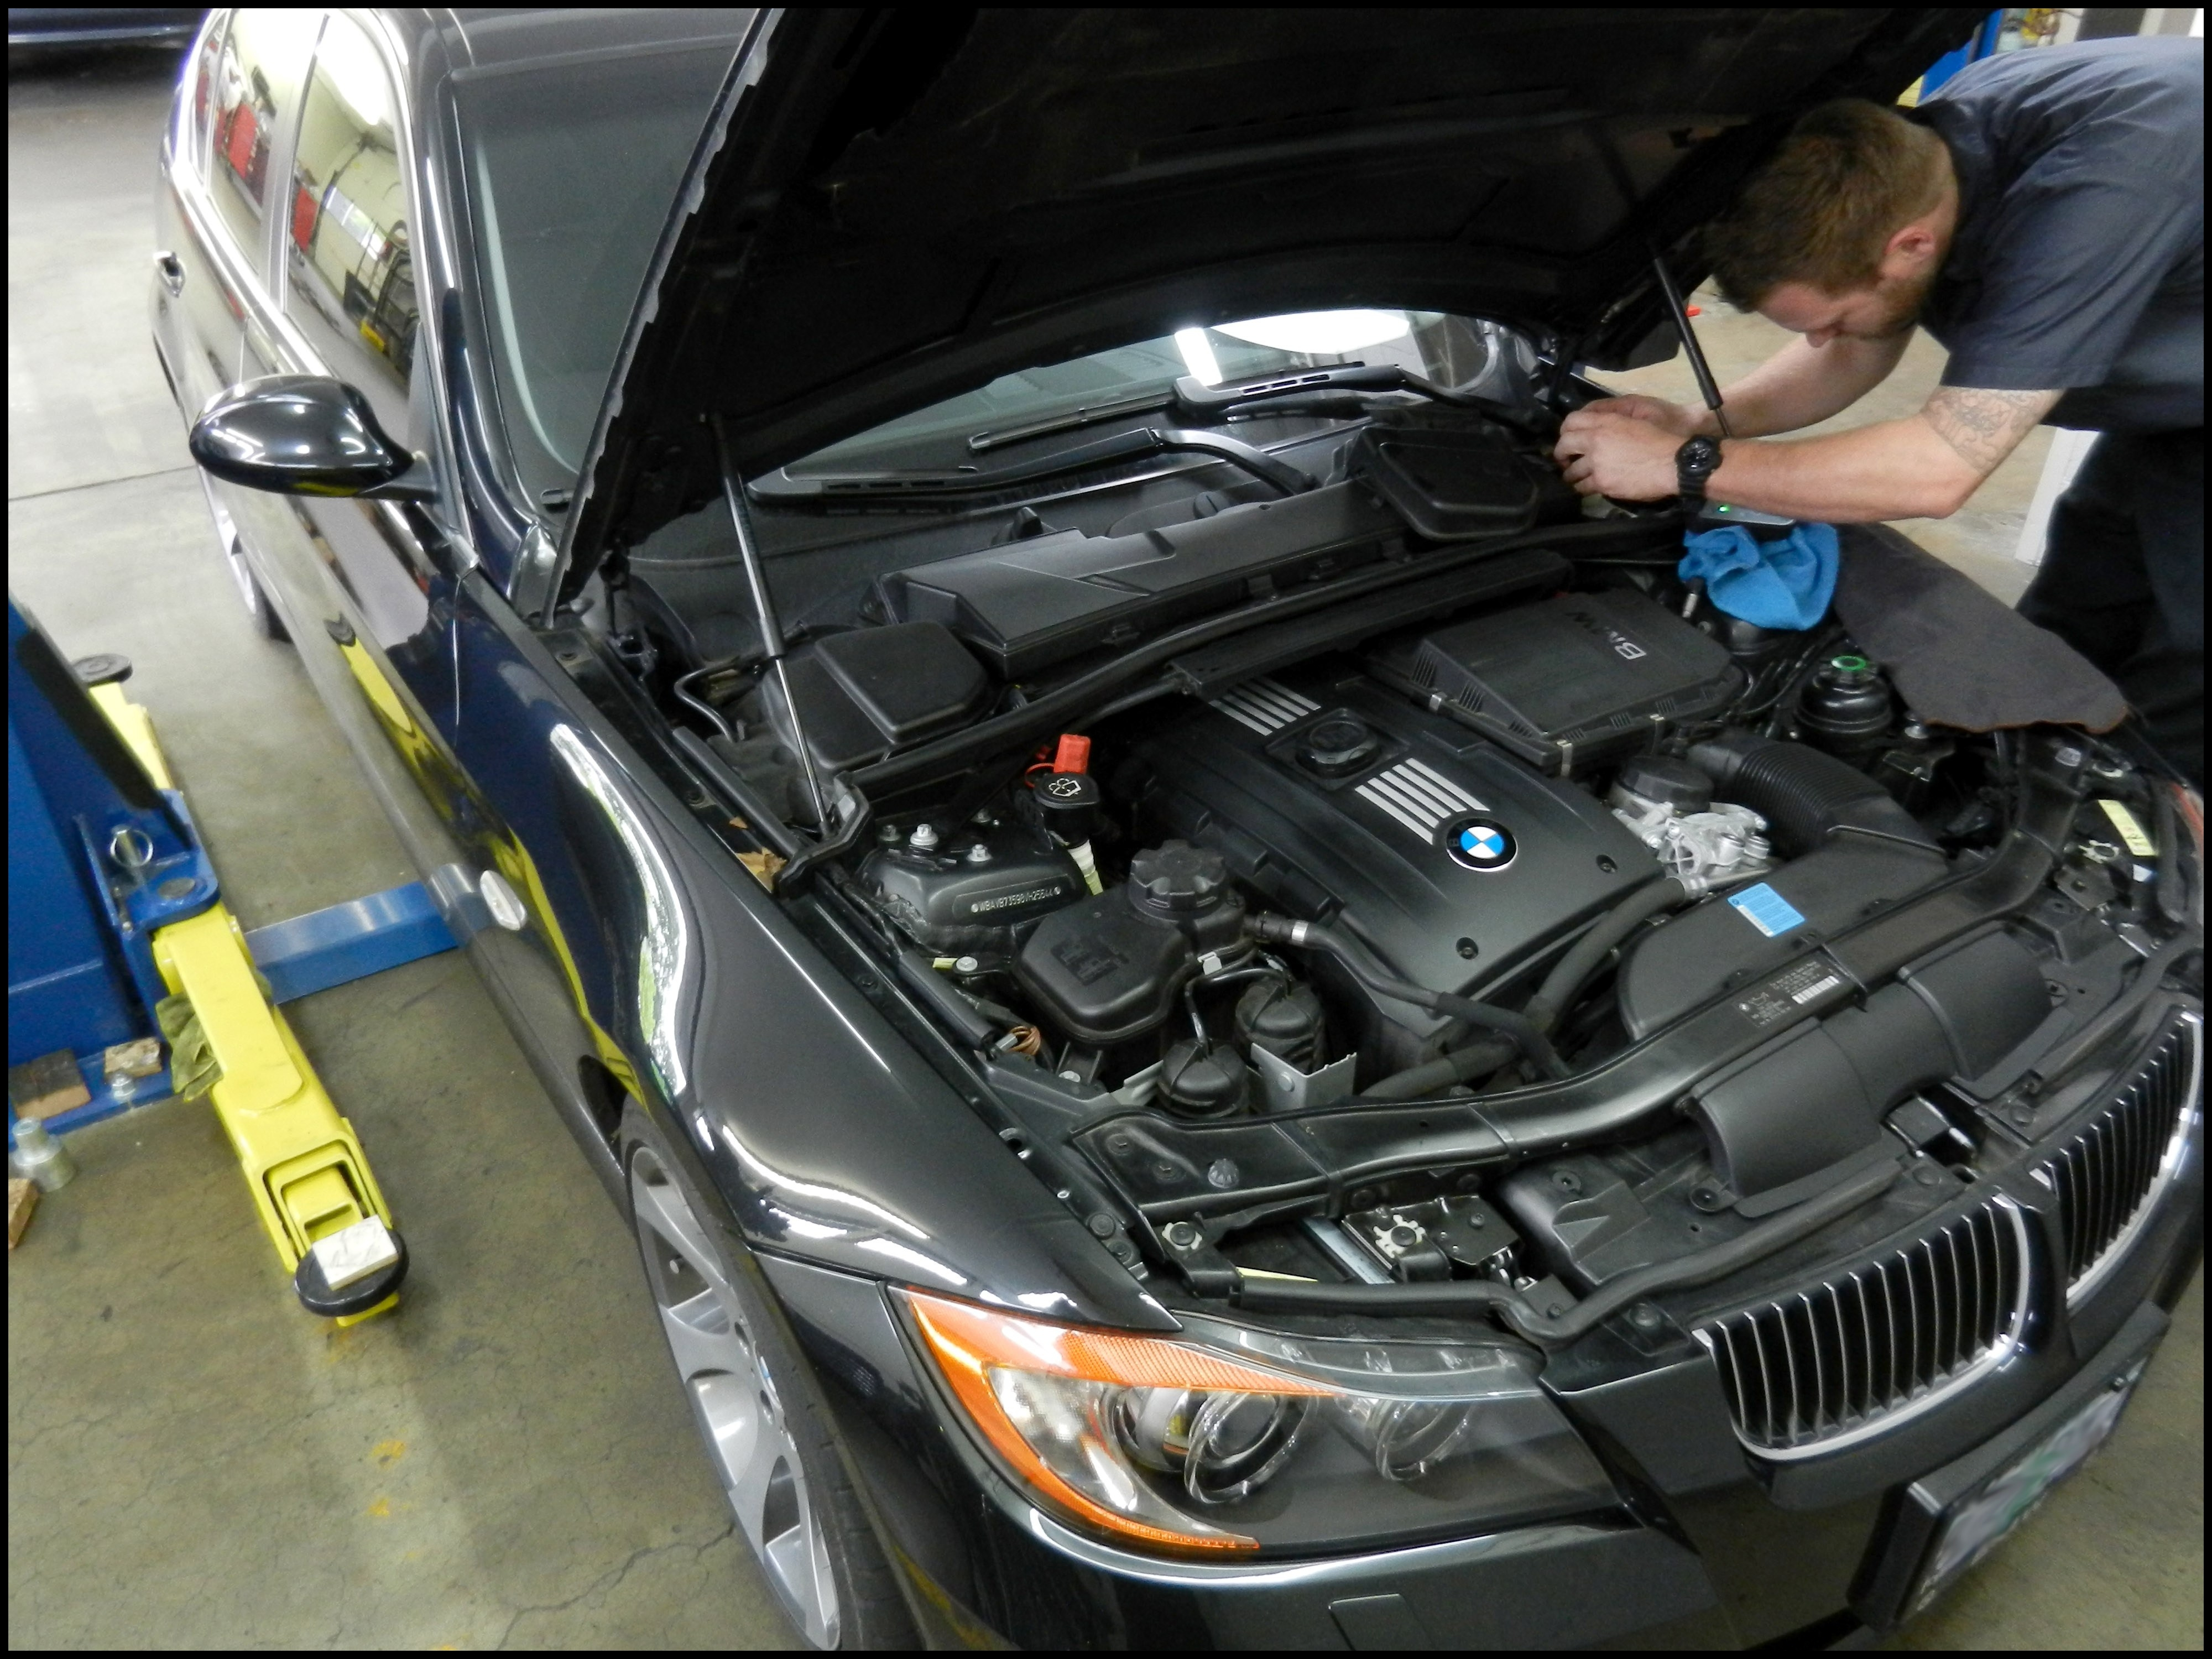 Attention to detail maintenance on E90 BMW 335i